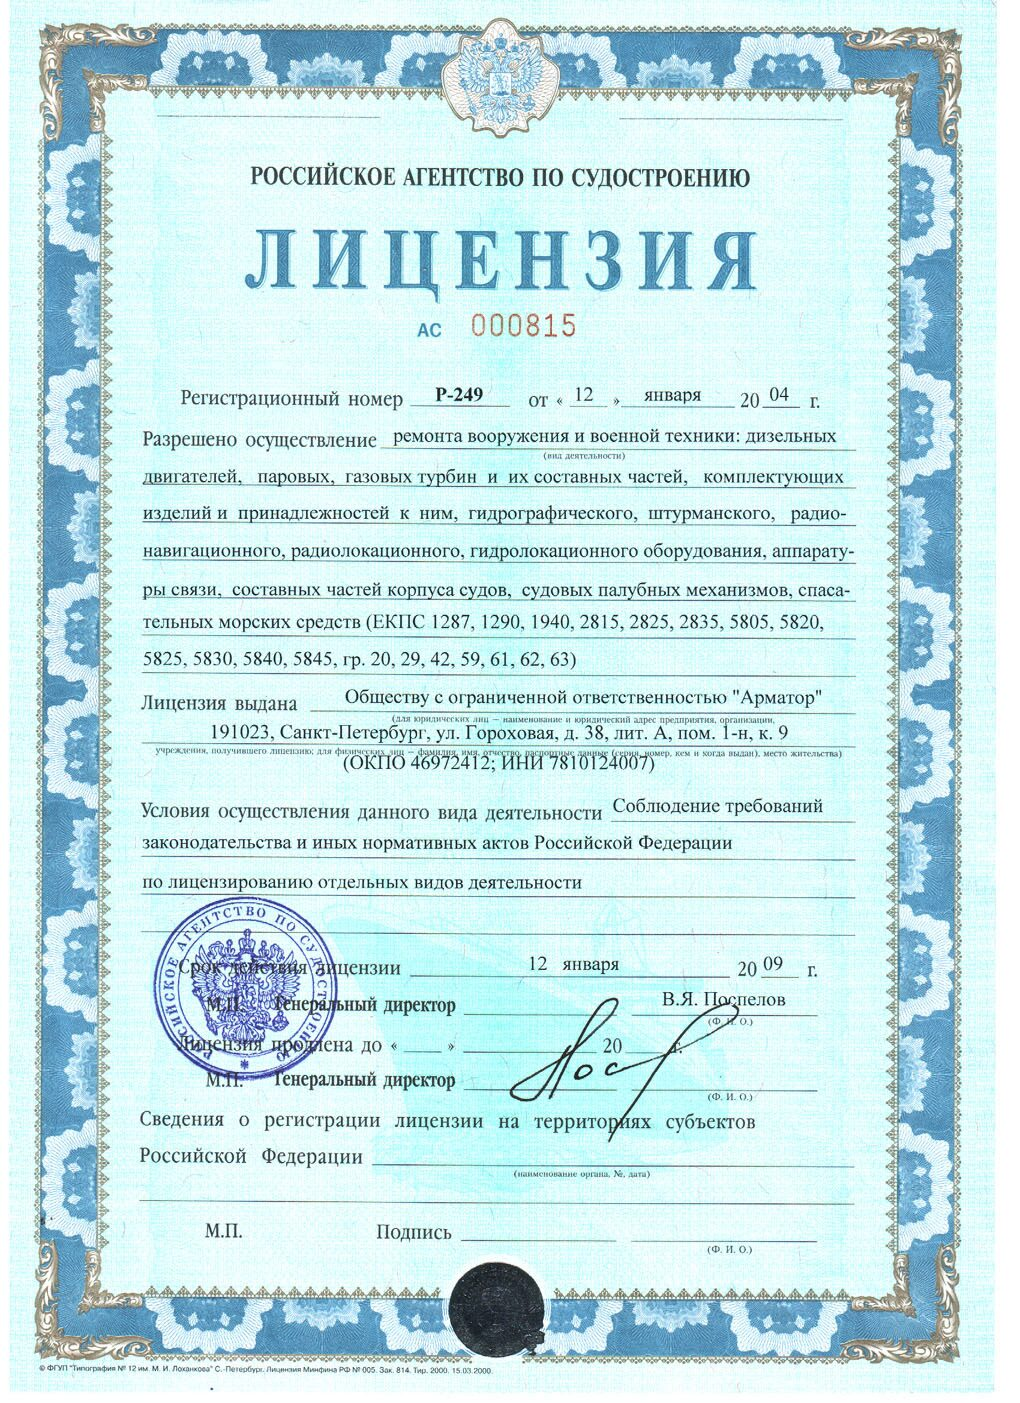 The licenses